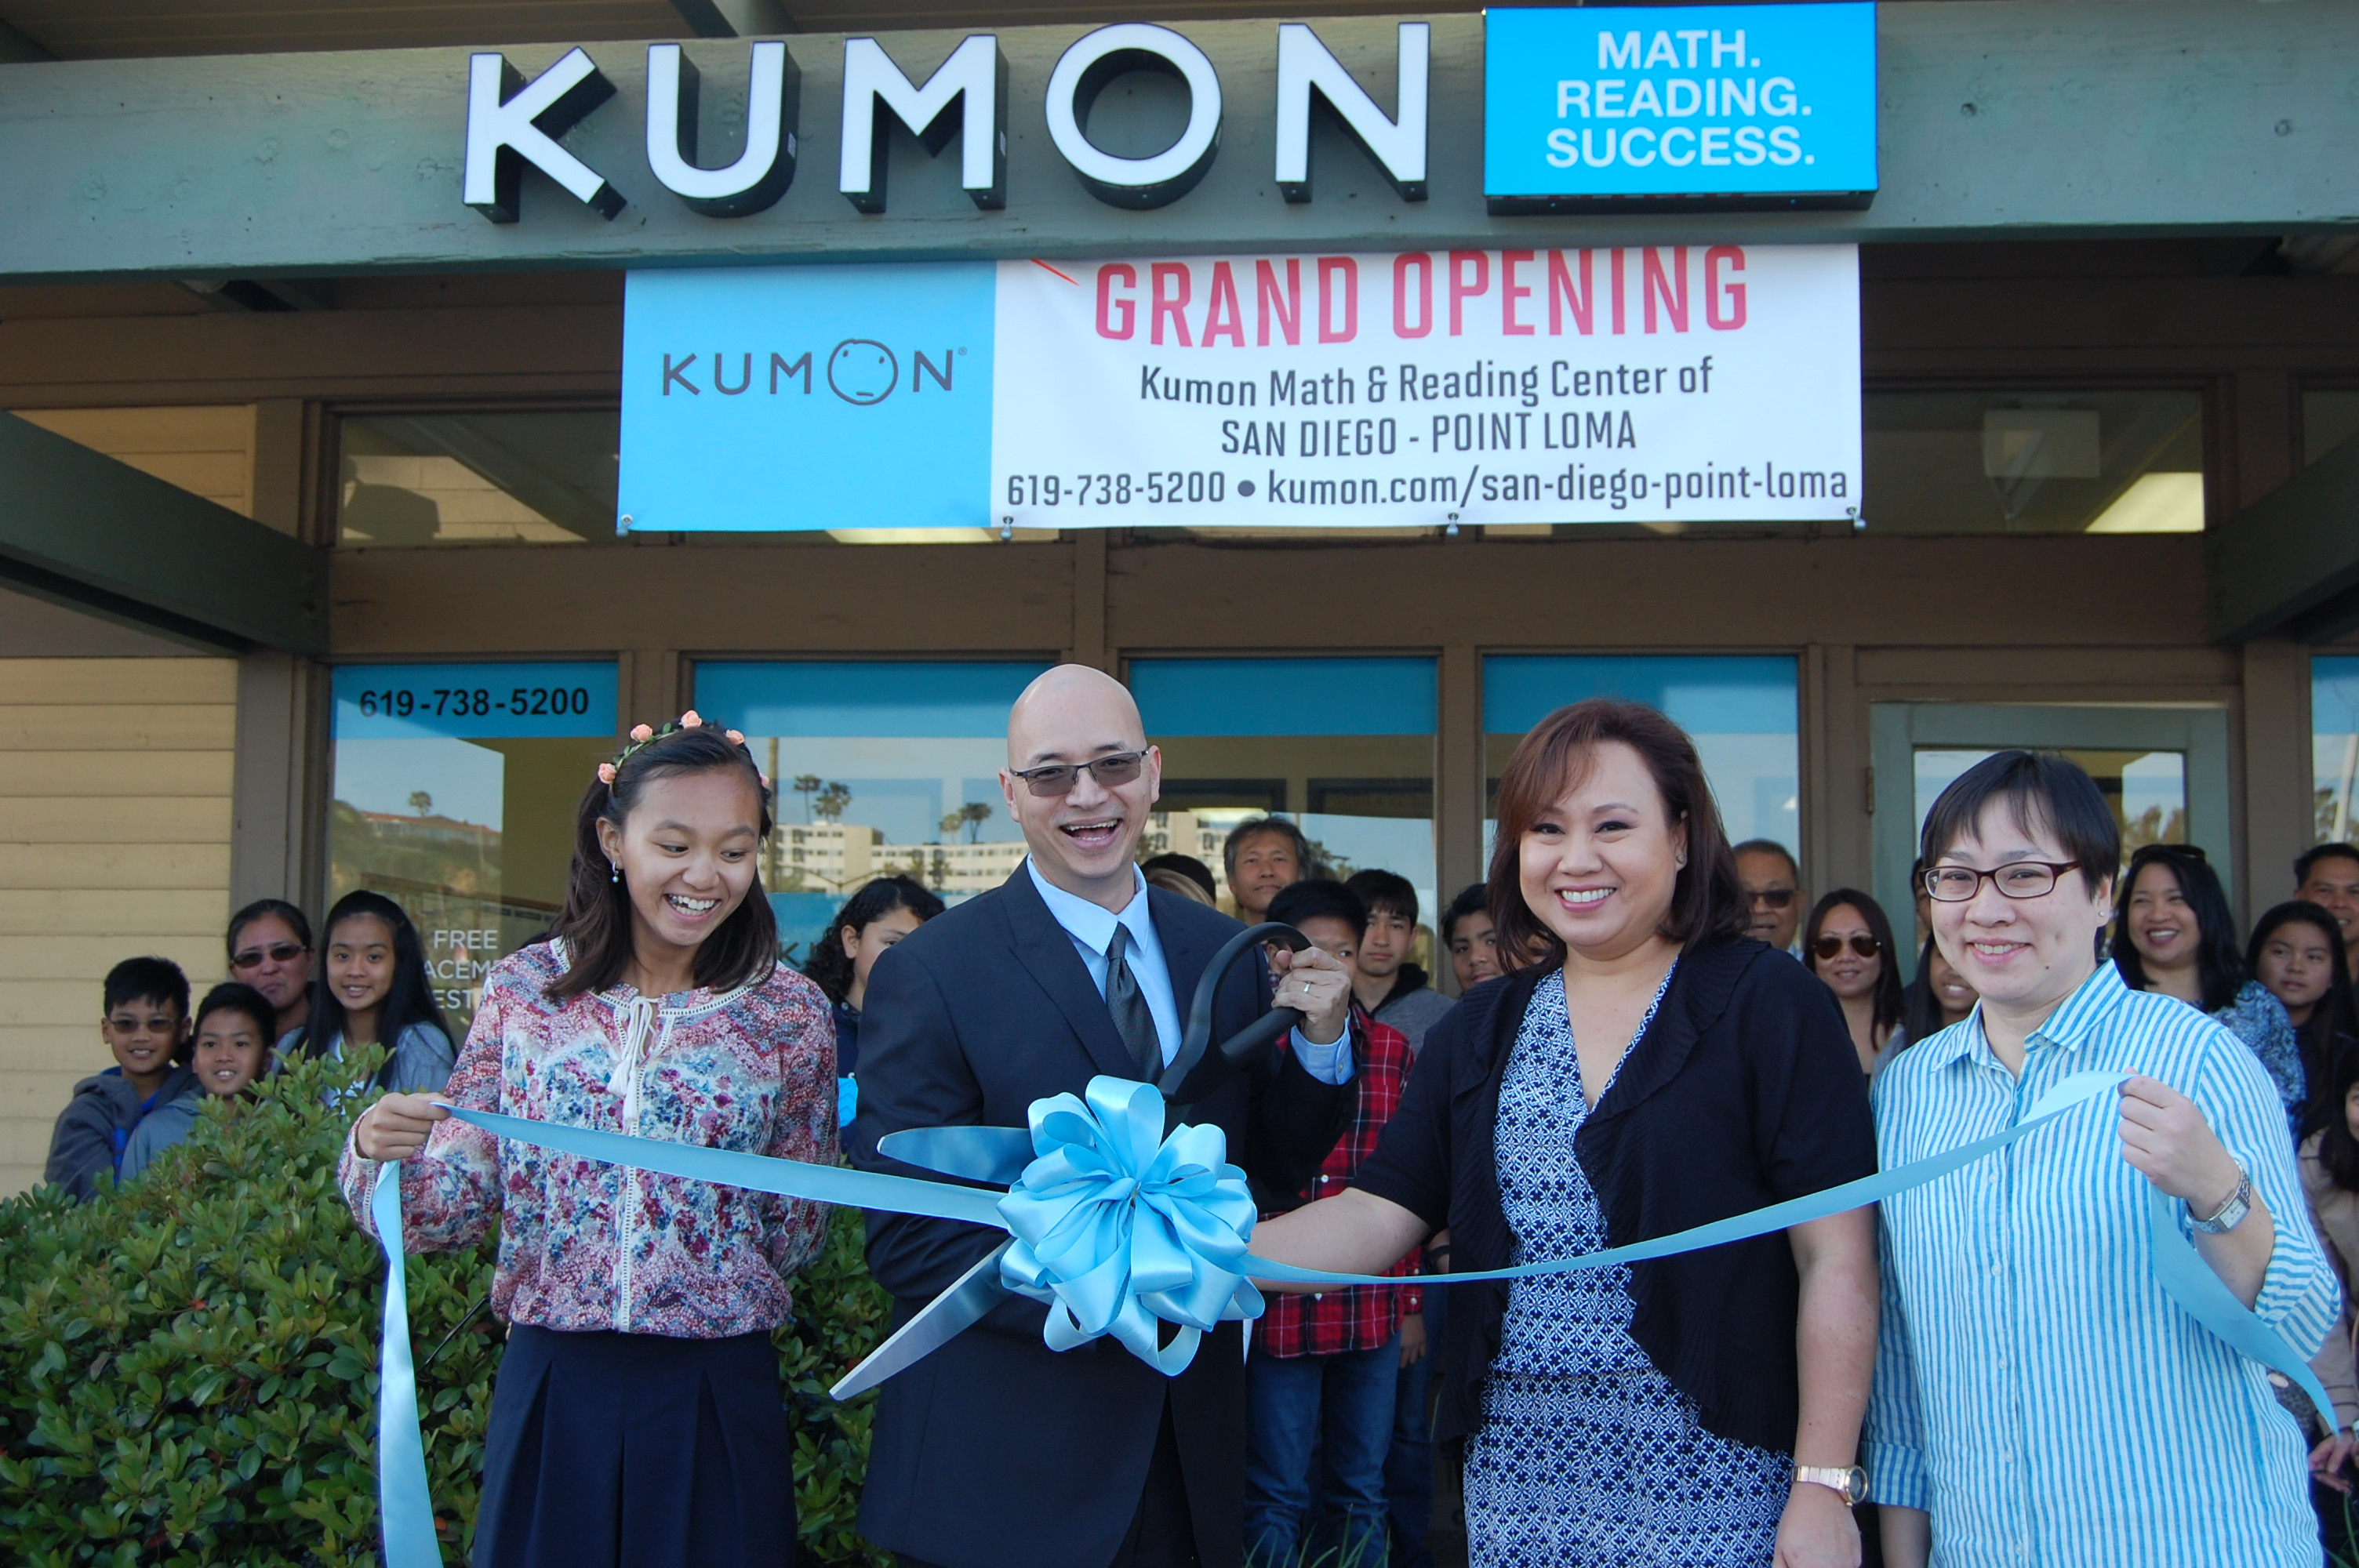 Grand Opening Of Kumon Math And Reading Center Of Point